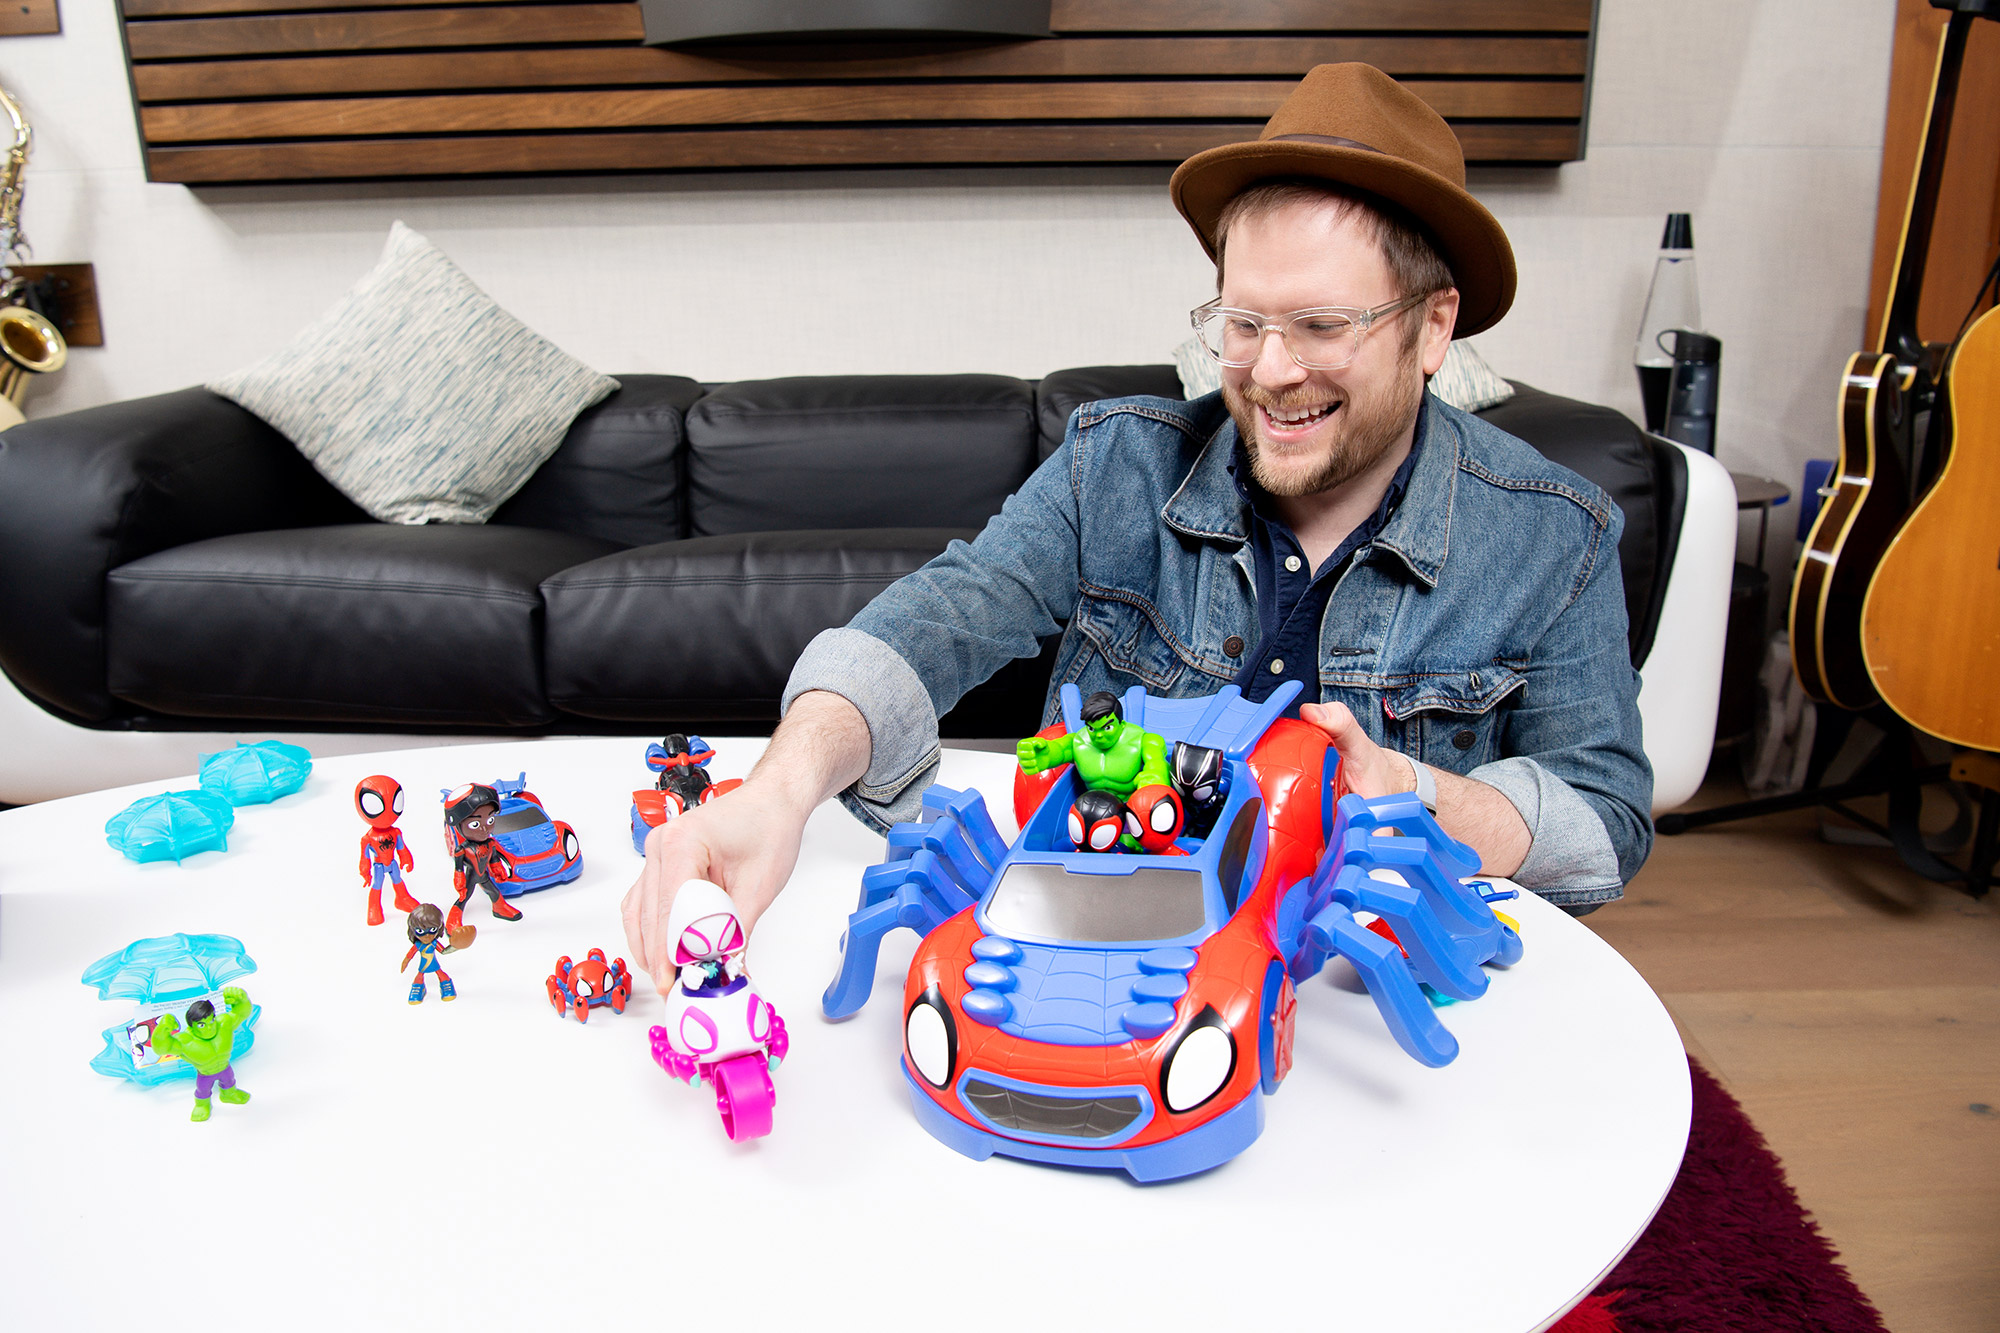 """Award-nominated musician Patrick Stump, who was just announced as the composer and theme song vocalist for """"Marvel's Spidey and his Amazing Friends,"""" gets a first-look at some of the new toys from Hasbro, which will debut later this summer in conjunction with the series premiere on Disney Channel and Disney Junior"""